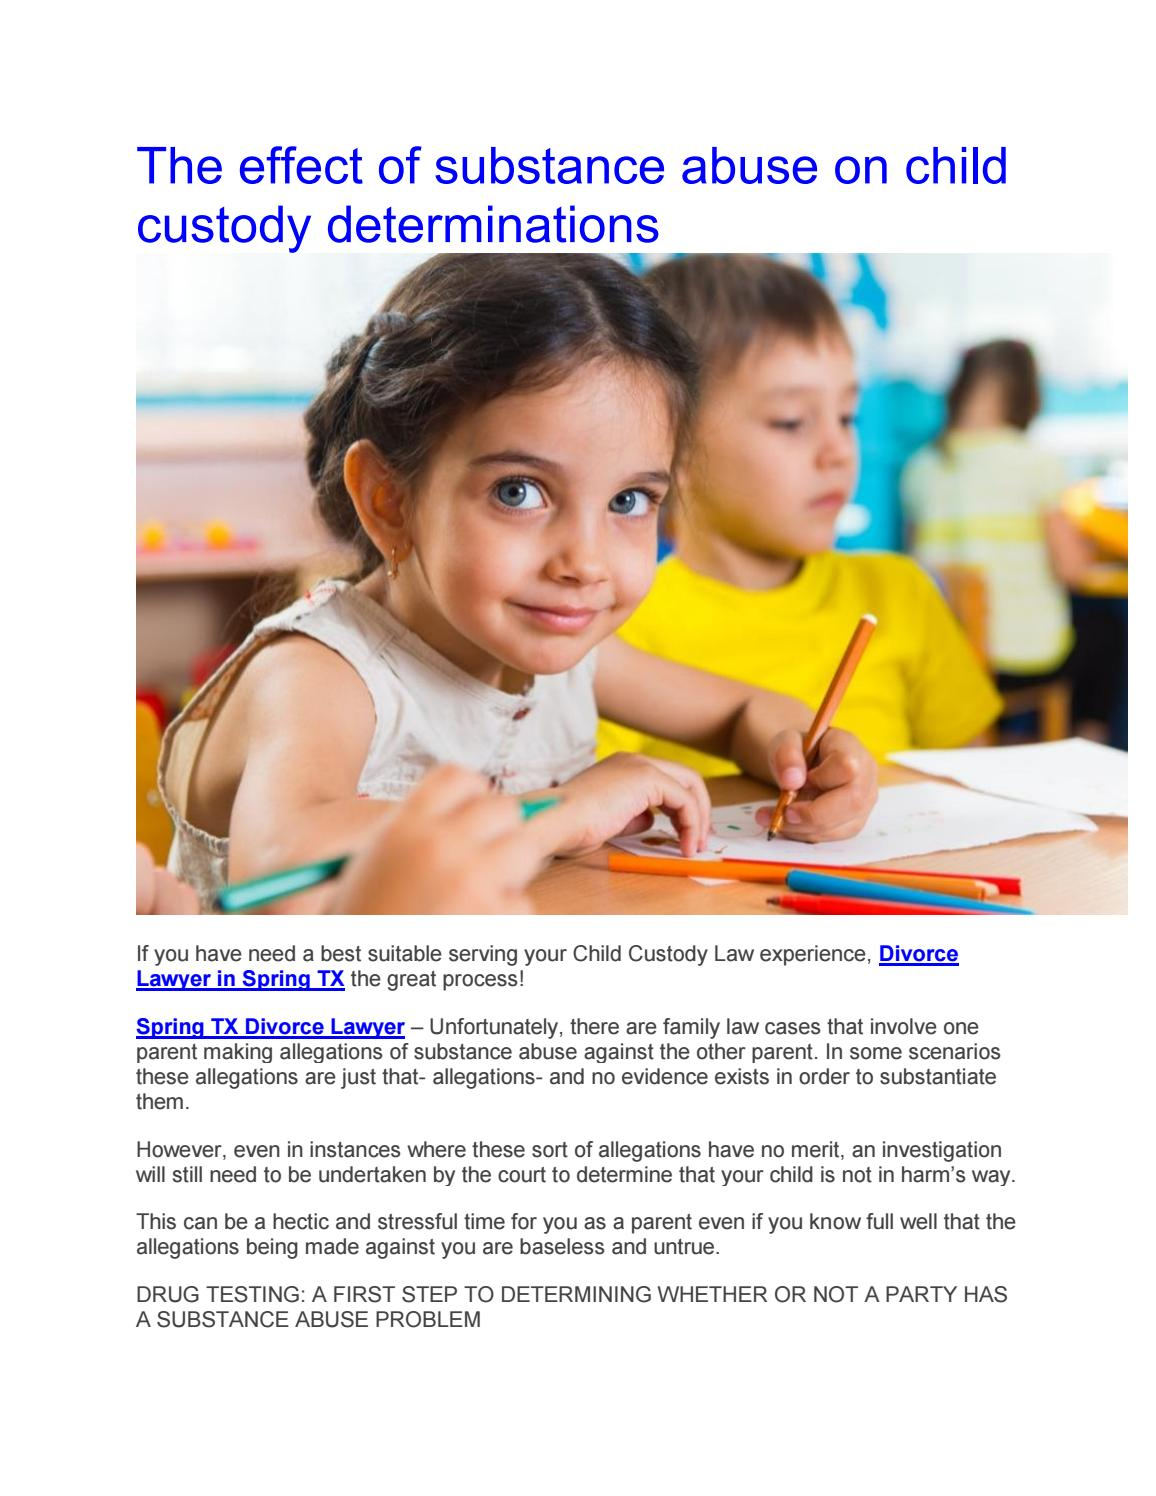 The effect of substance abuse on child custody